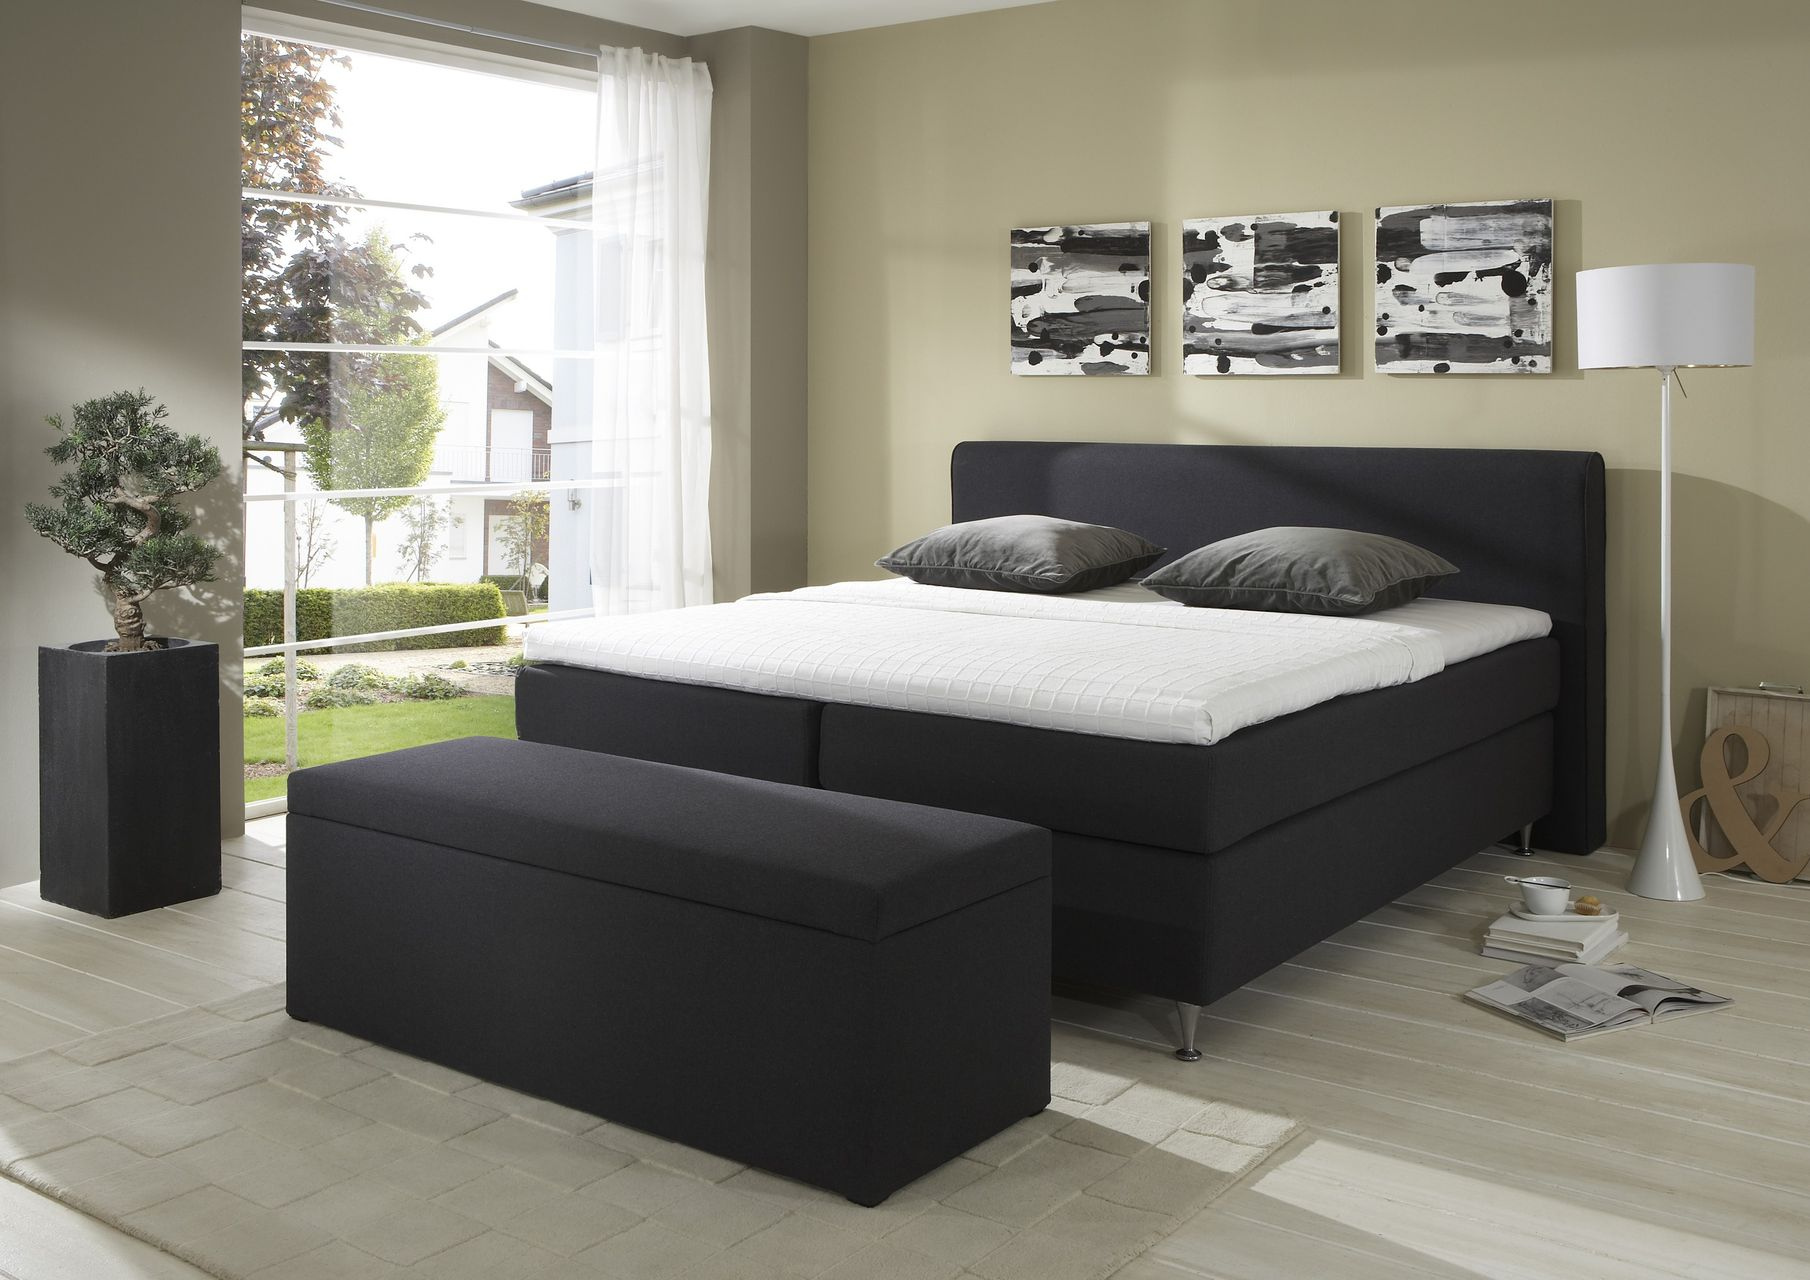 boxspringbett crown plaza. Black Bedroom Furniture Sets. Home Design Ideas